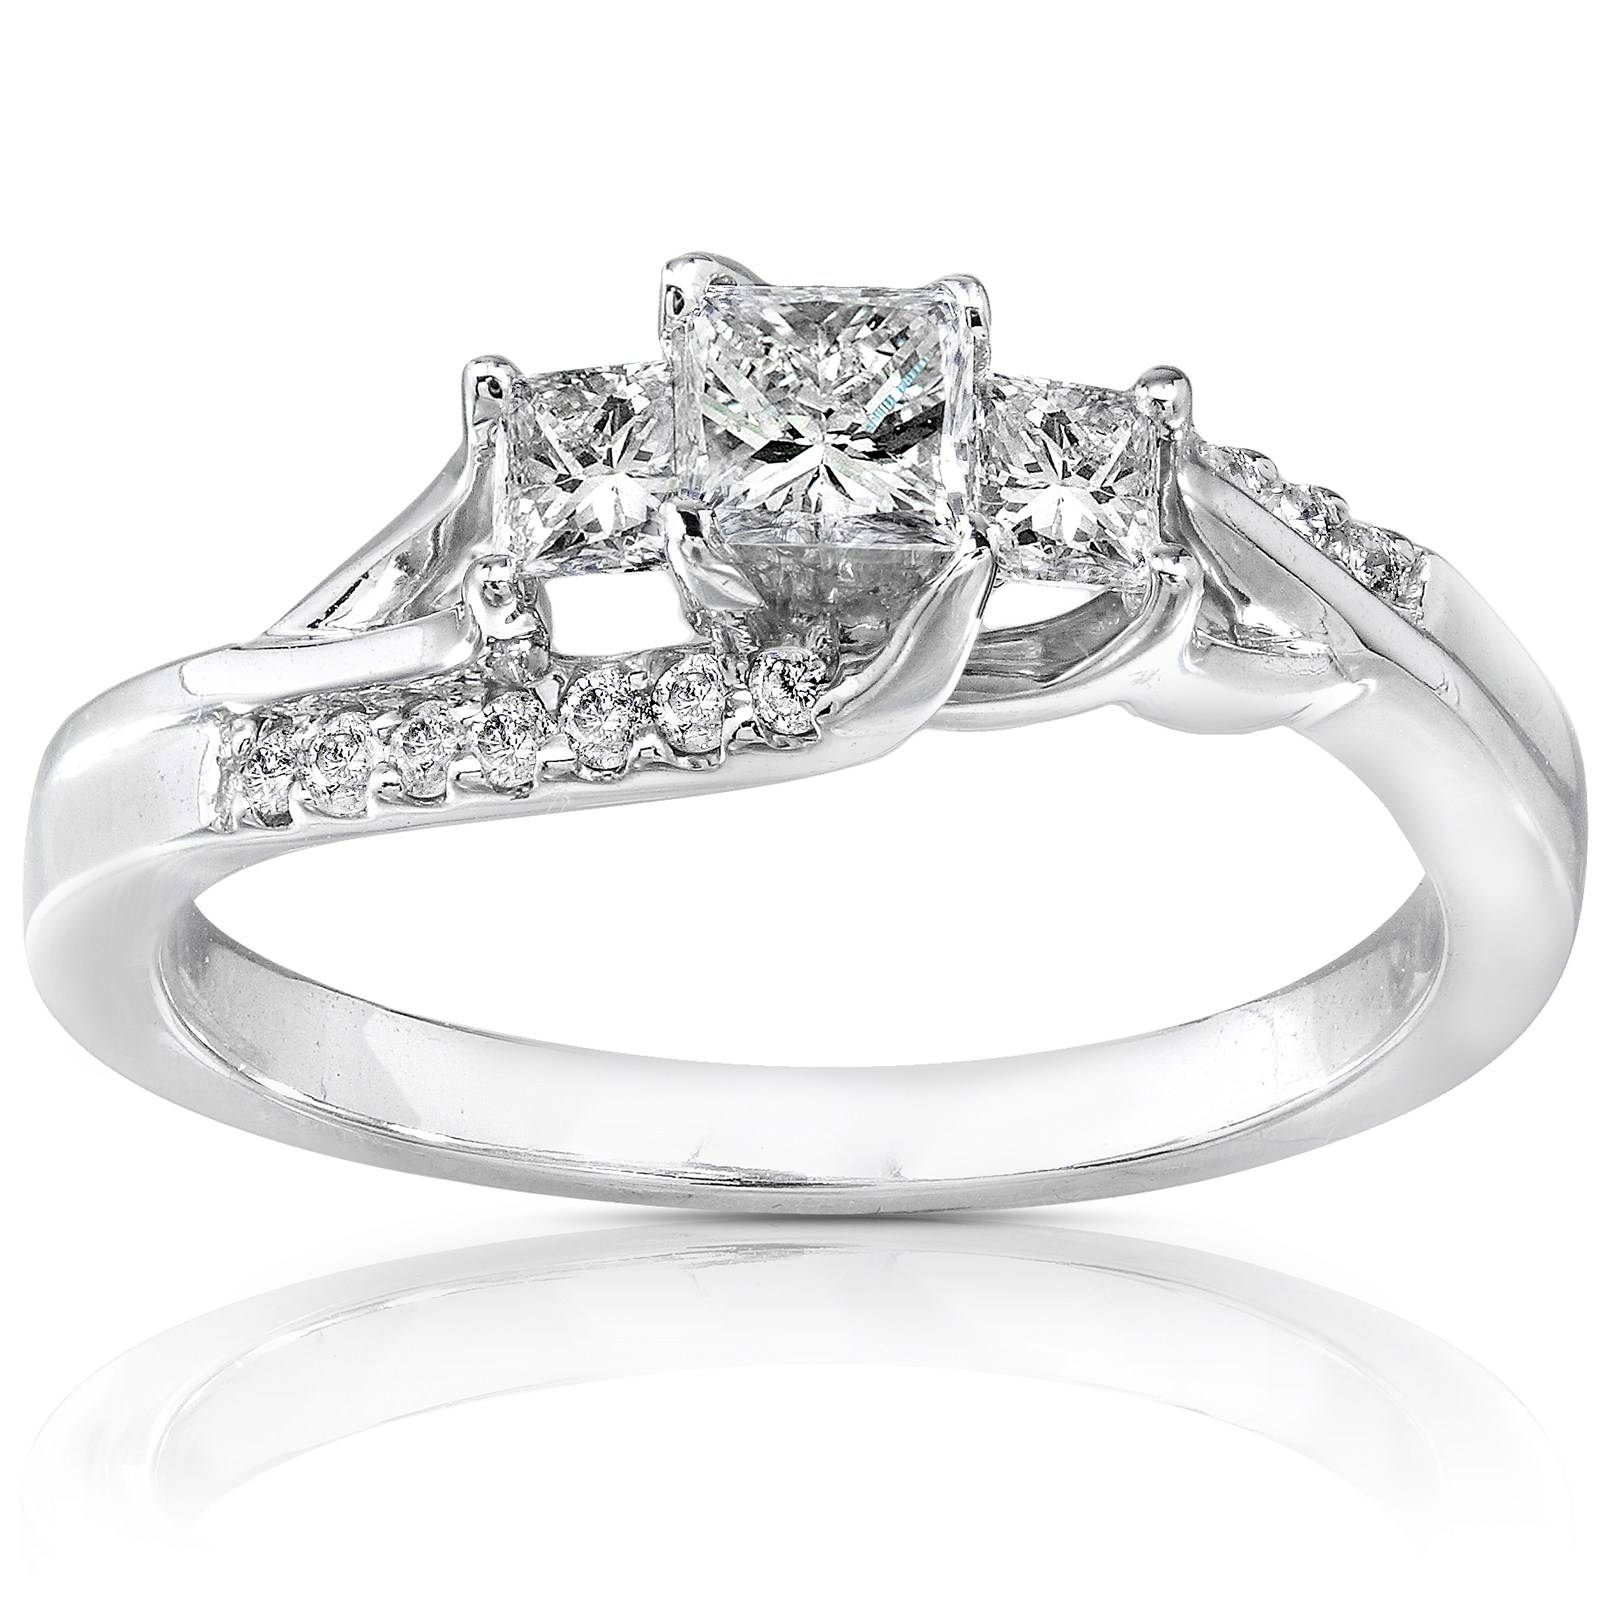 Engagement Rings : P P Stunning Engagement Rings Sears Kobelli 1 2 With Sears Engagement Rings (View 7 of 15)